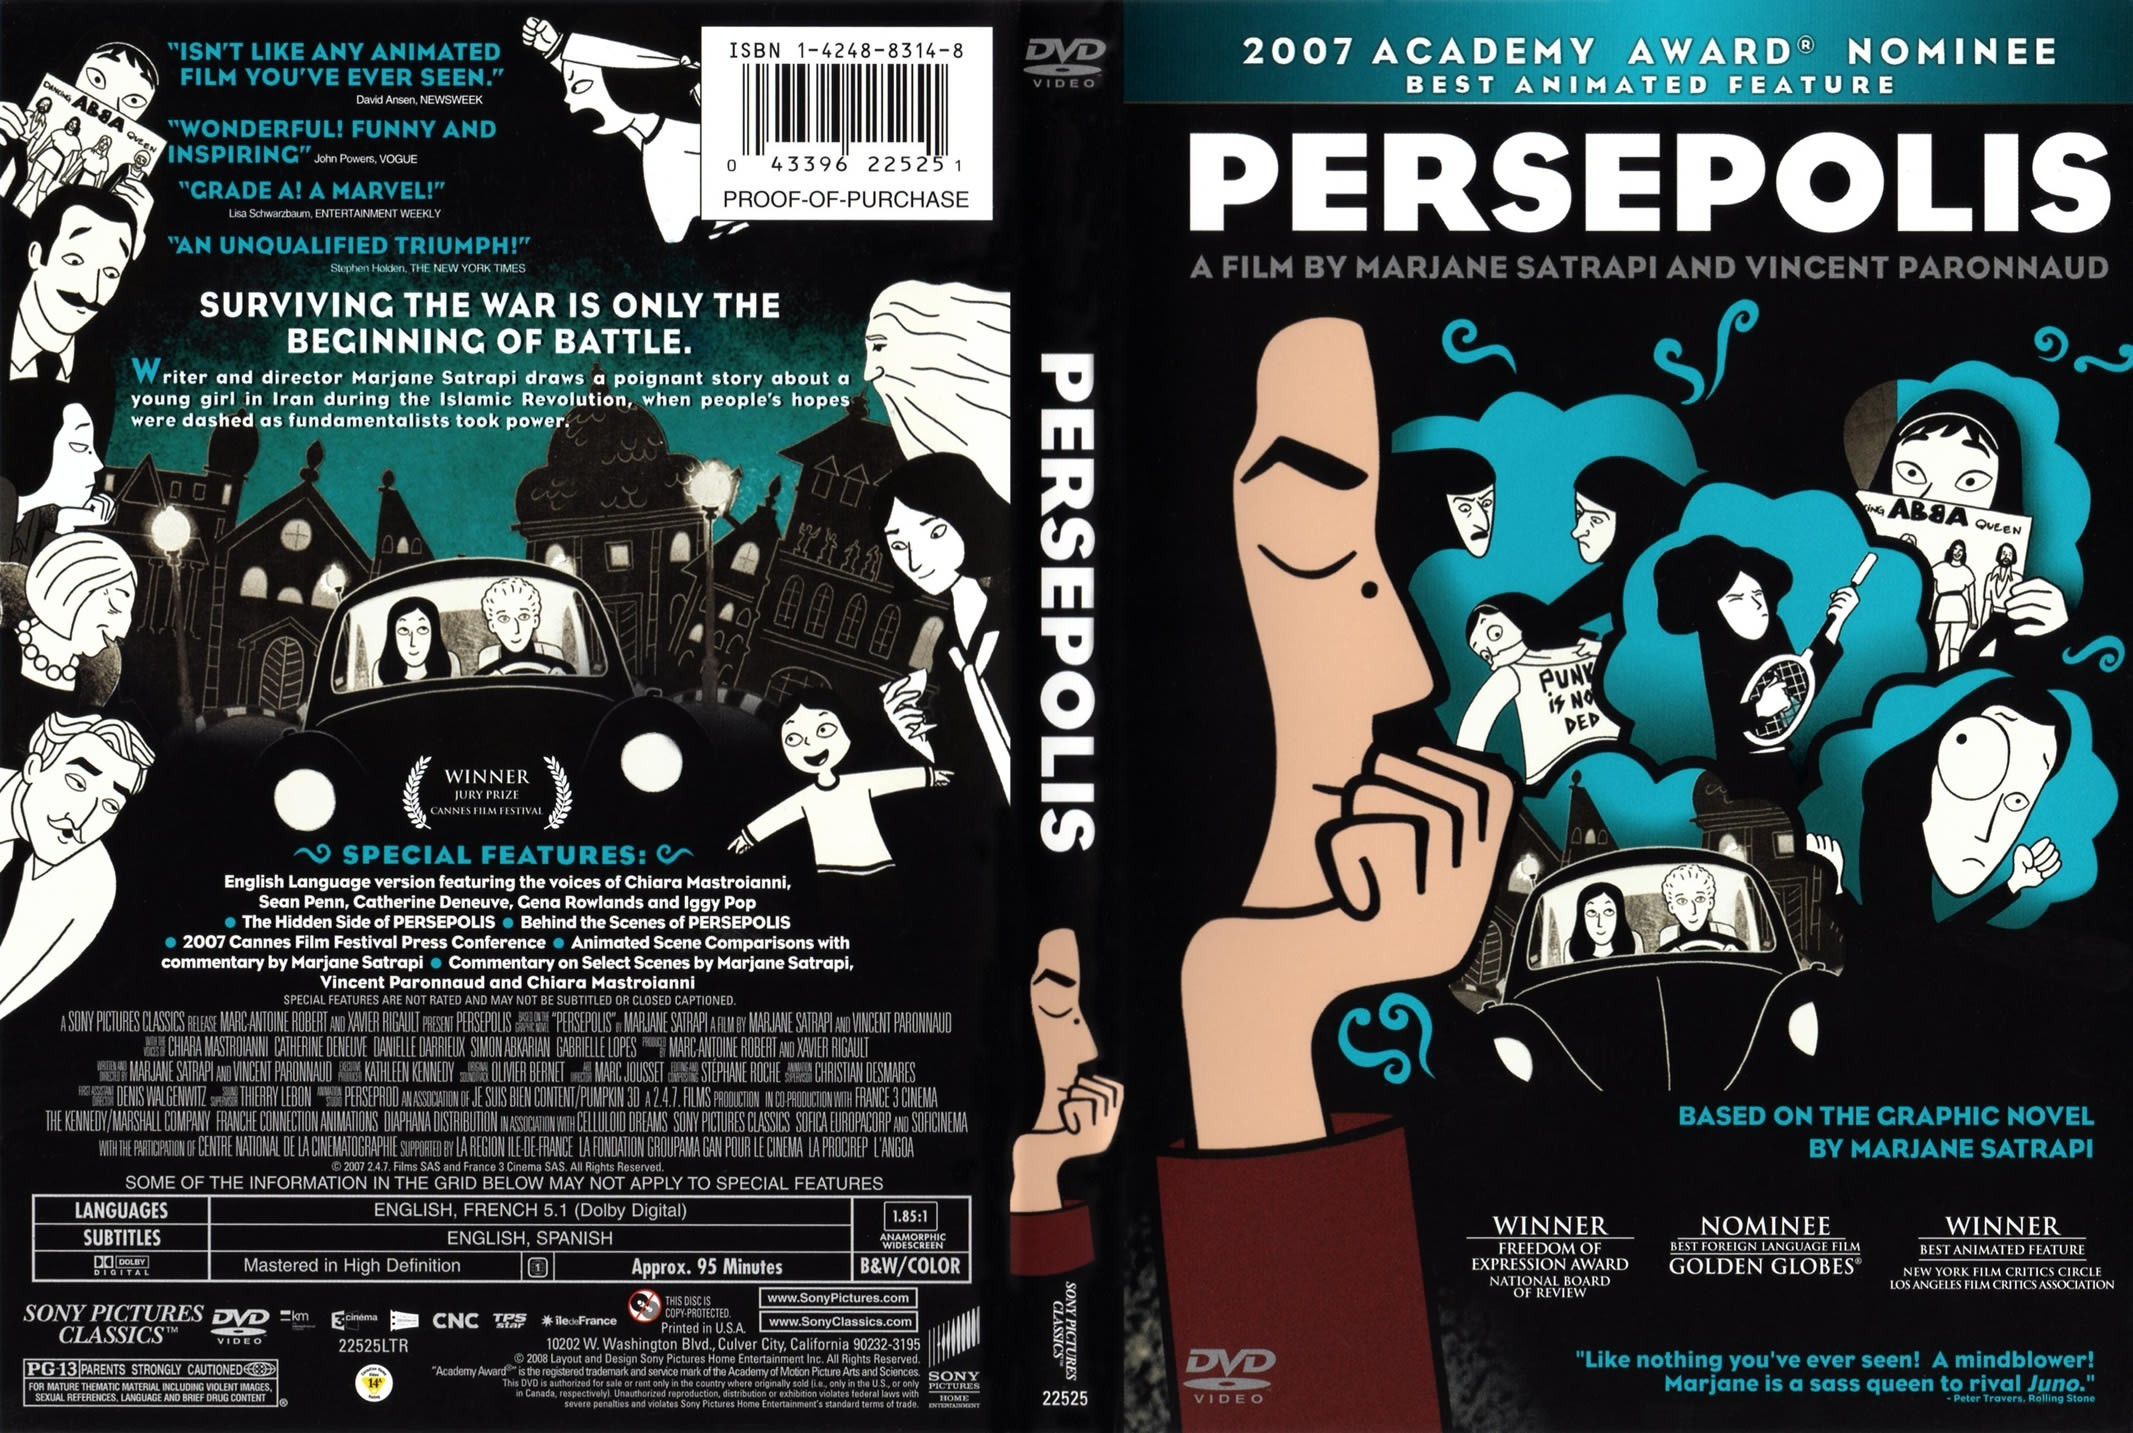 persepolis book summary themes amp analysis video - HD 2133×1433